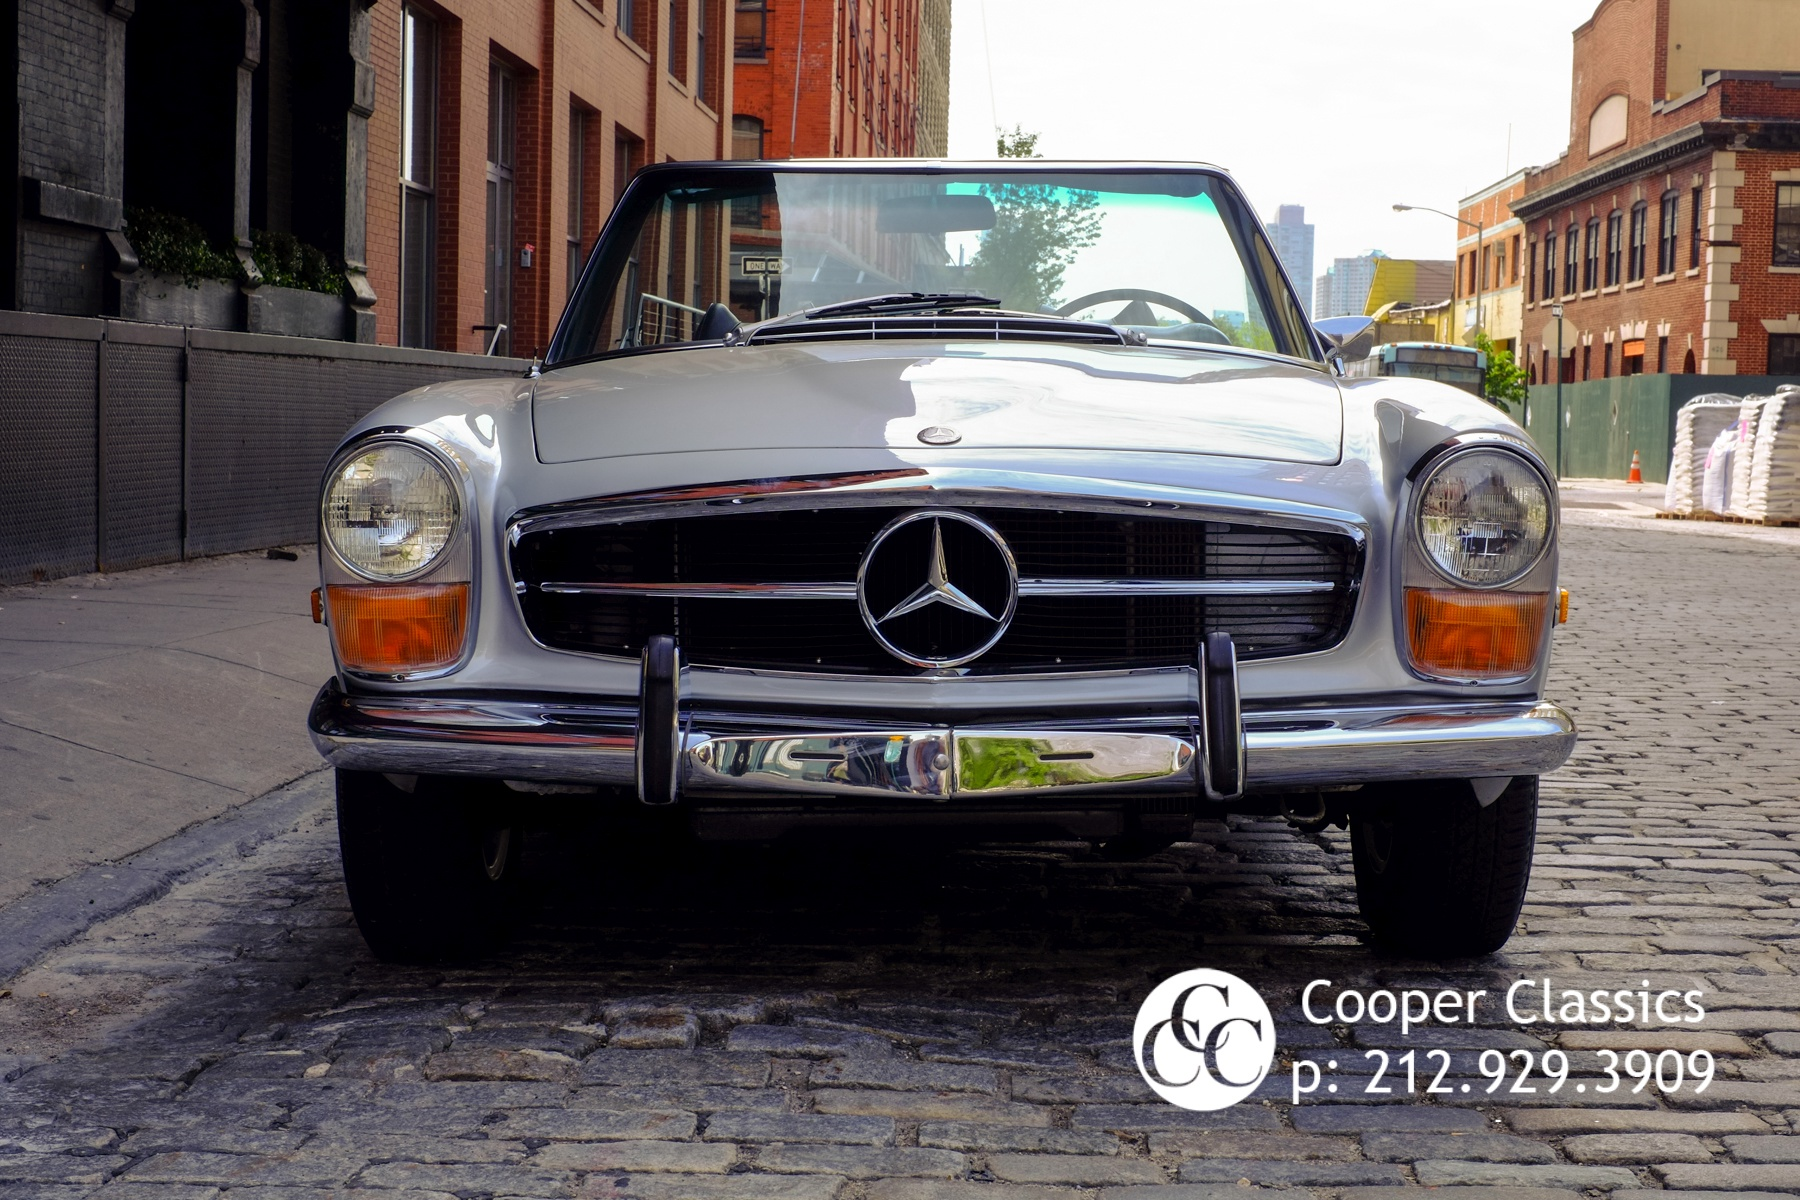 1971 mercedes benz 280sl stock 656 for sale near new for Mercedes benz nyc